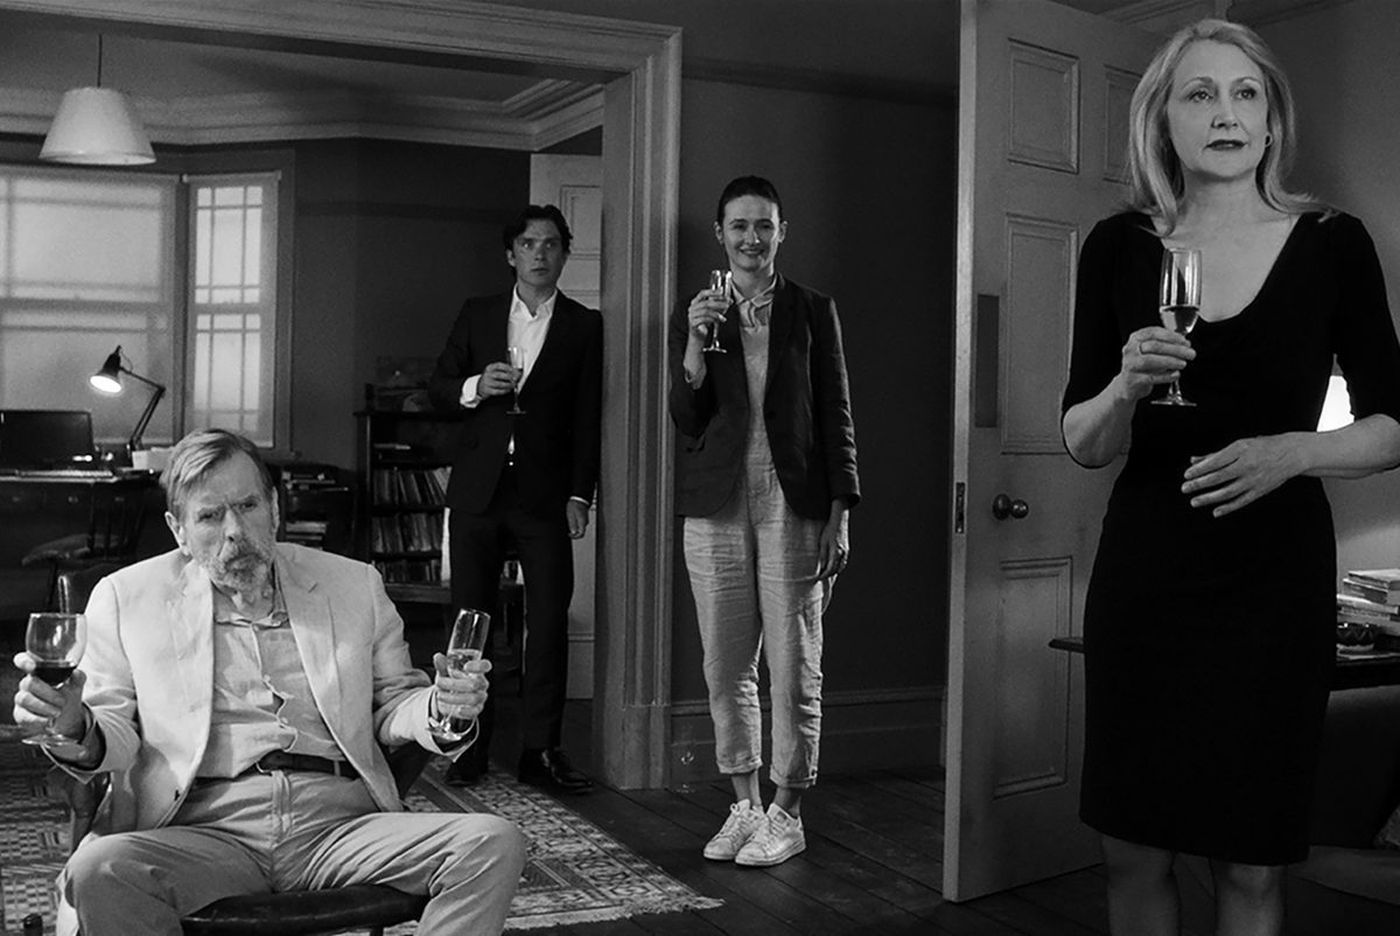 Sally Potter's 'The Party' is a caustic political farce